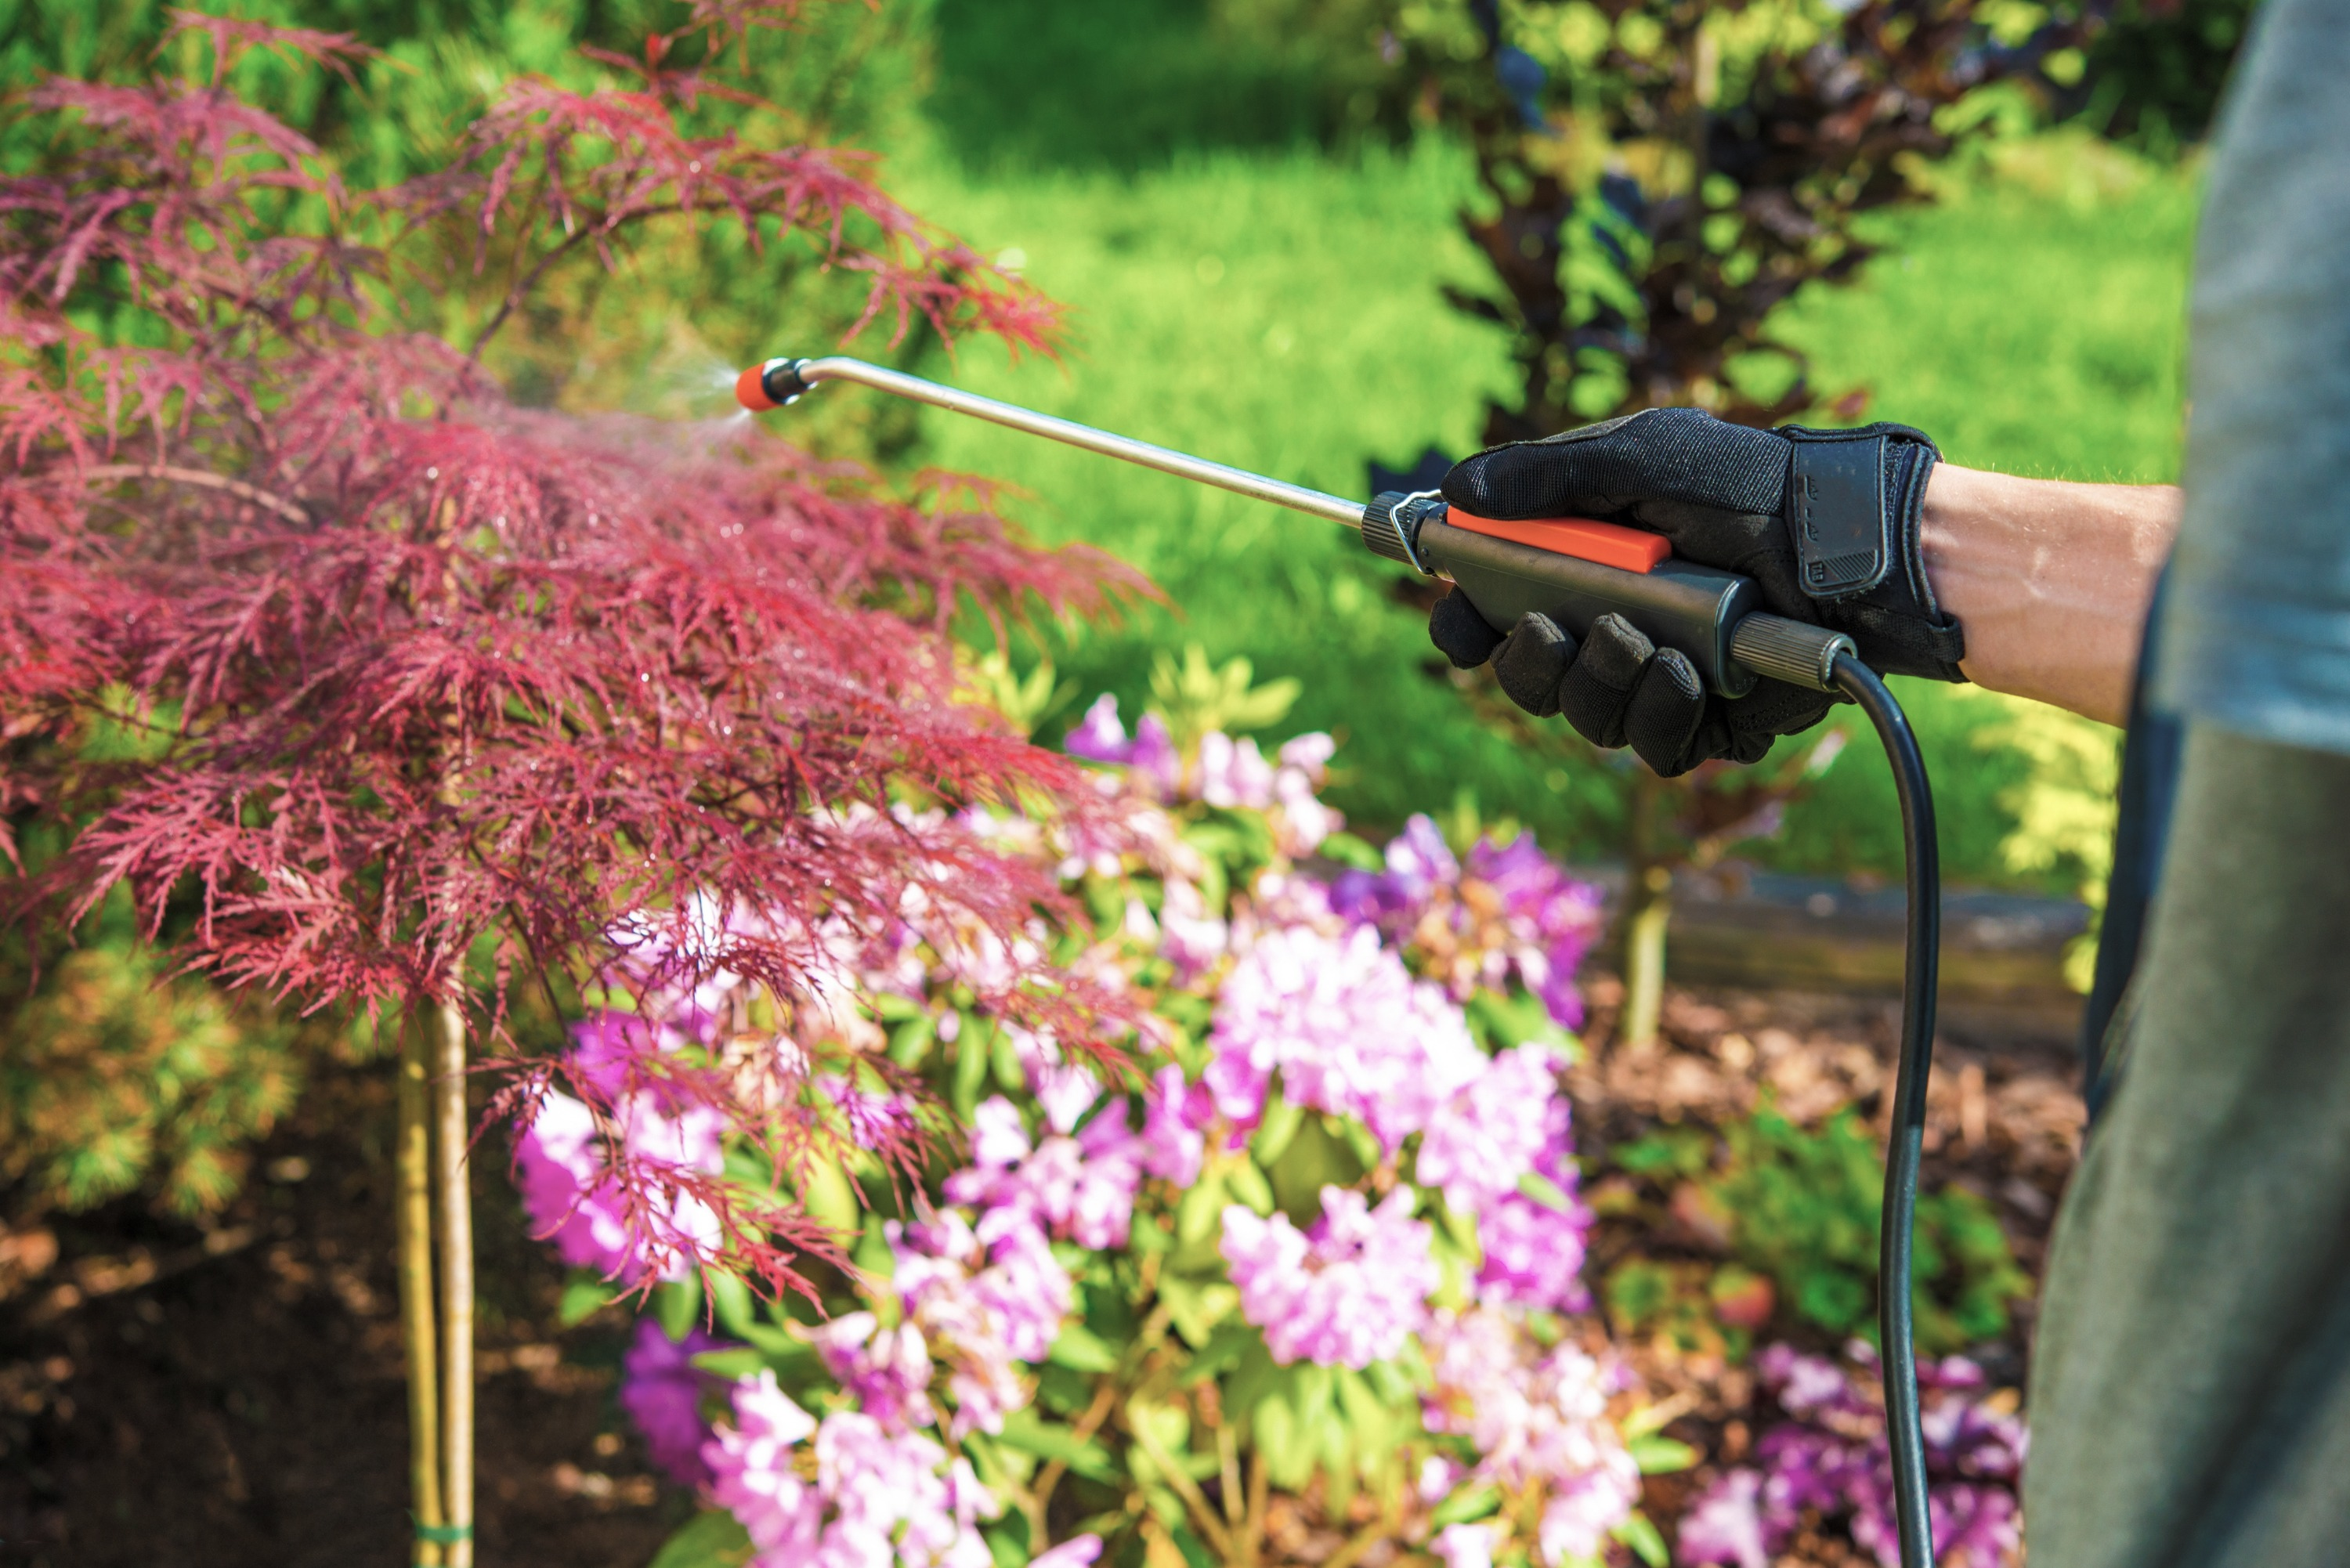 A pest control specialist wearing a dark green shirt and black gloves holds a red and silver pest control wand that sprays solution on a Japanese maple tree and pink flowering plants.